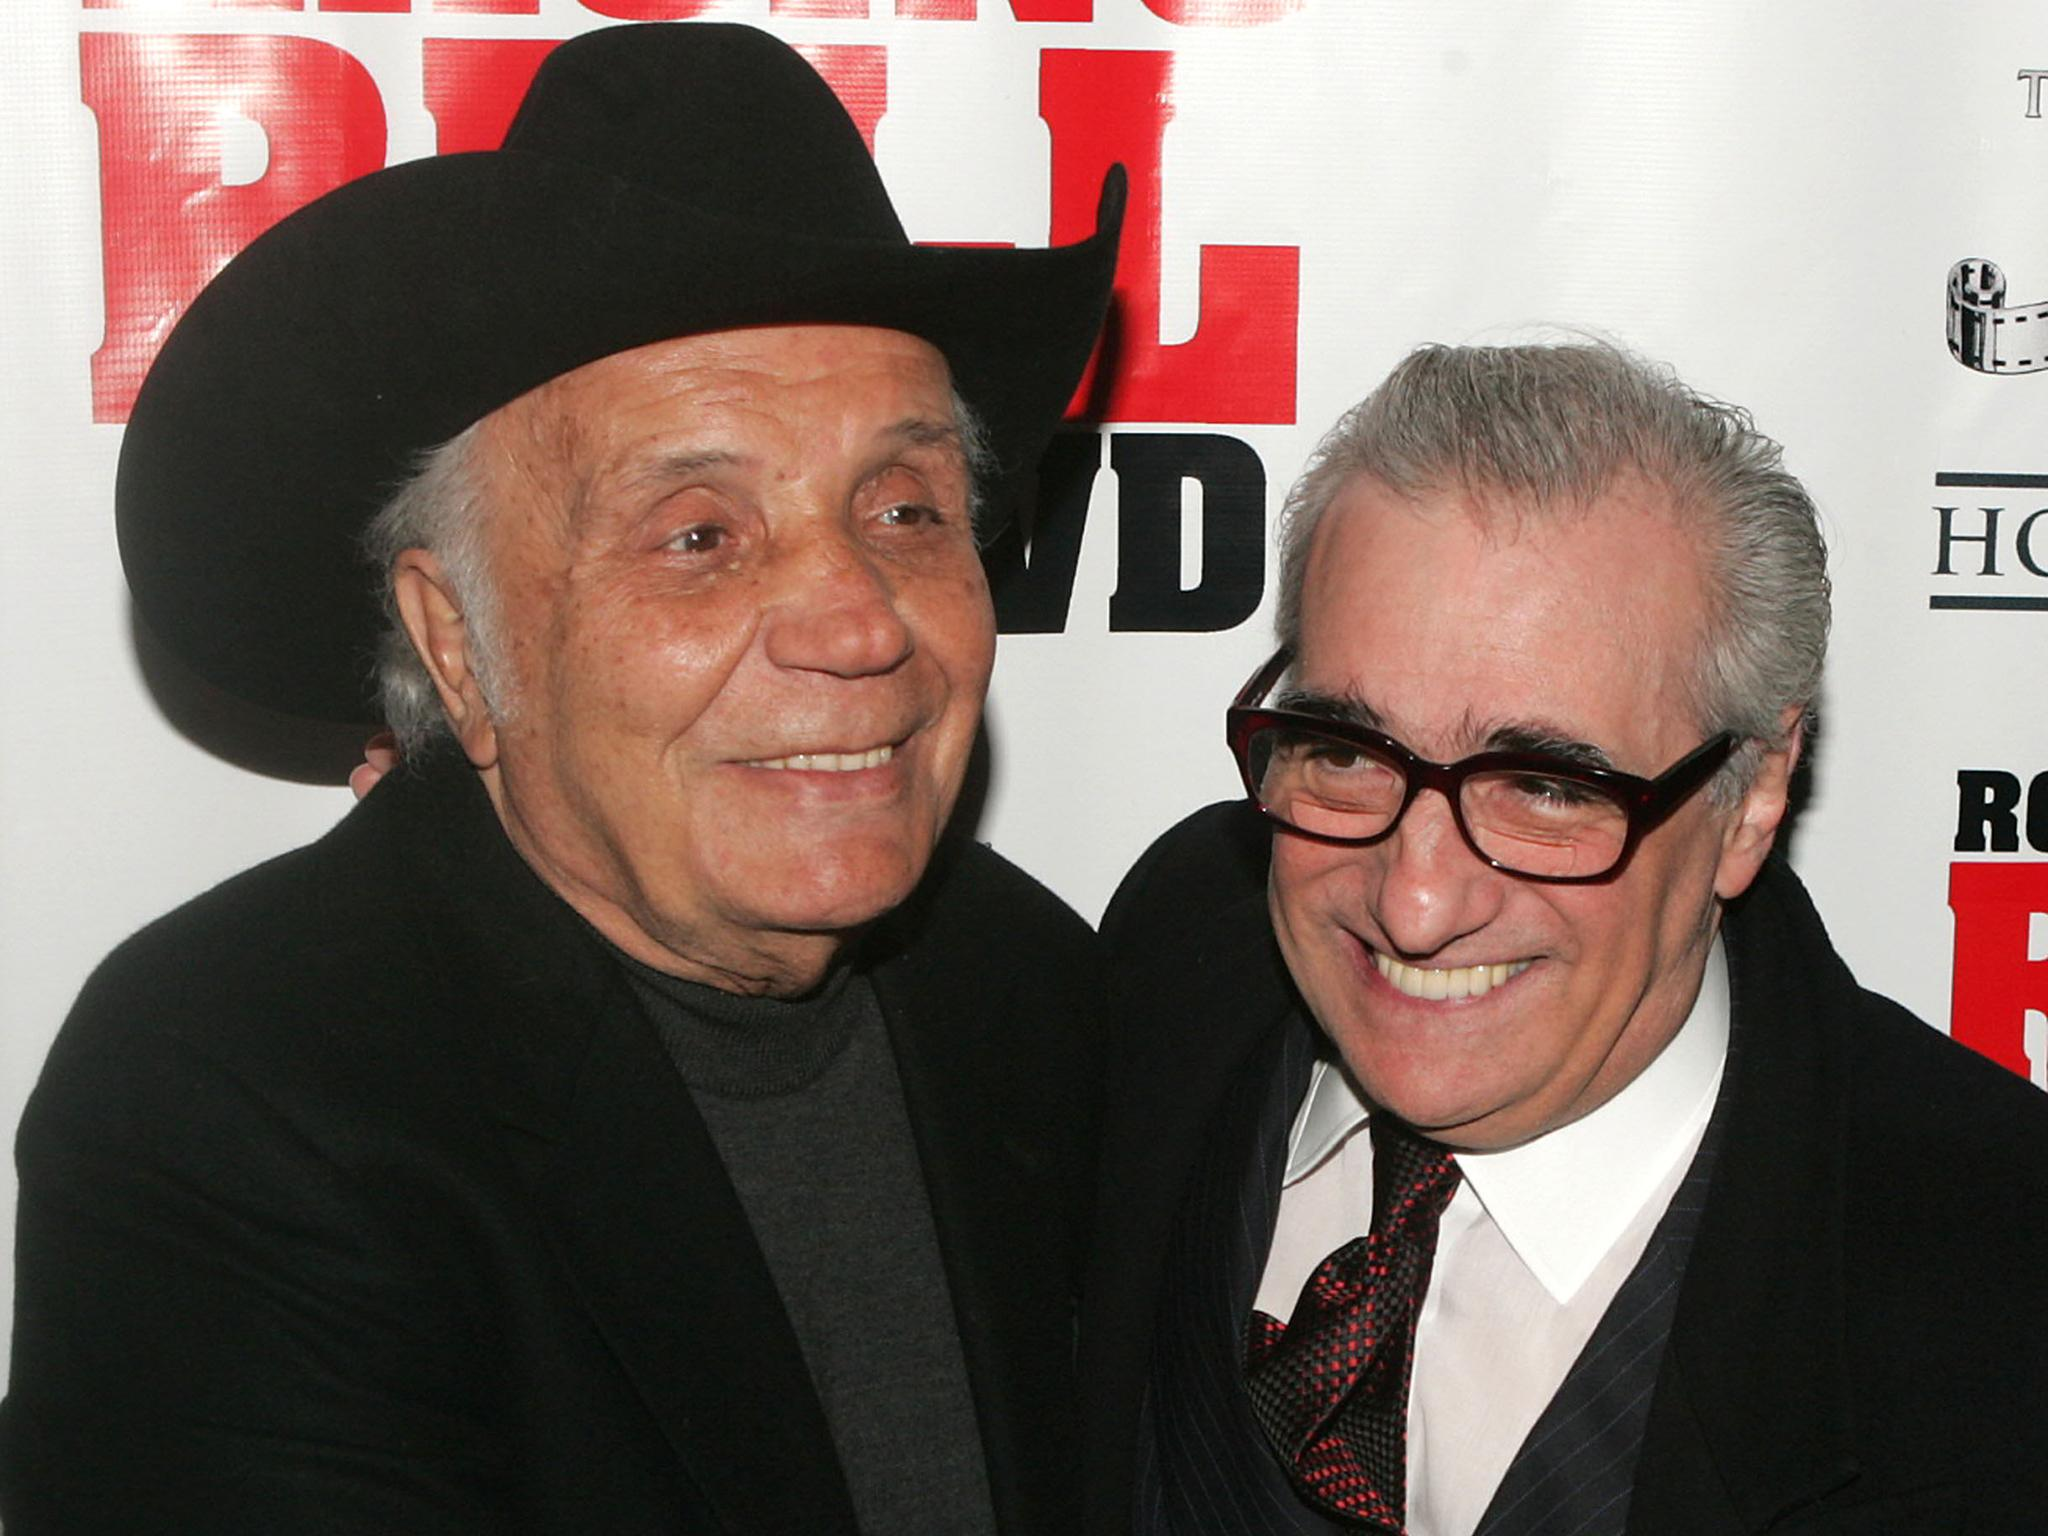 Jake LaMotta dead: A night in New York with the Raging Bull